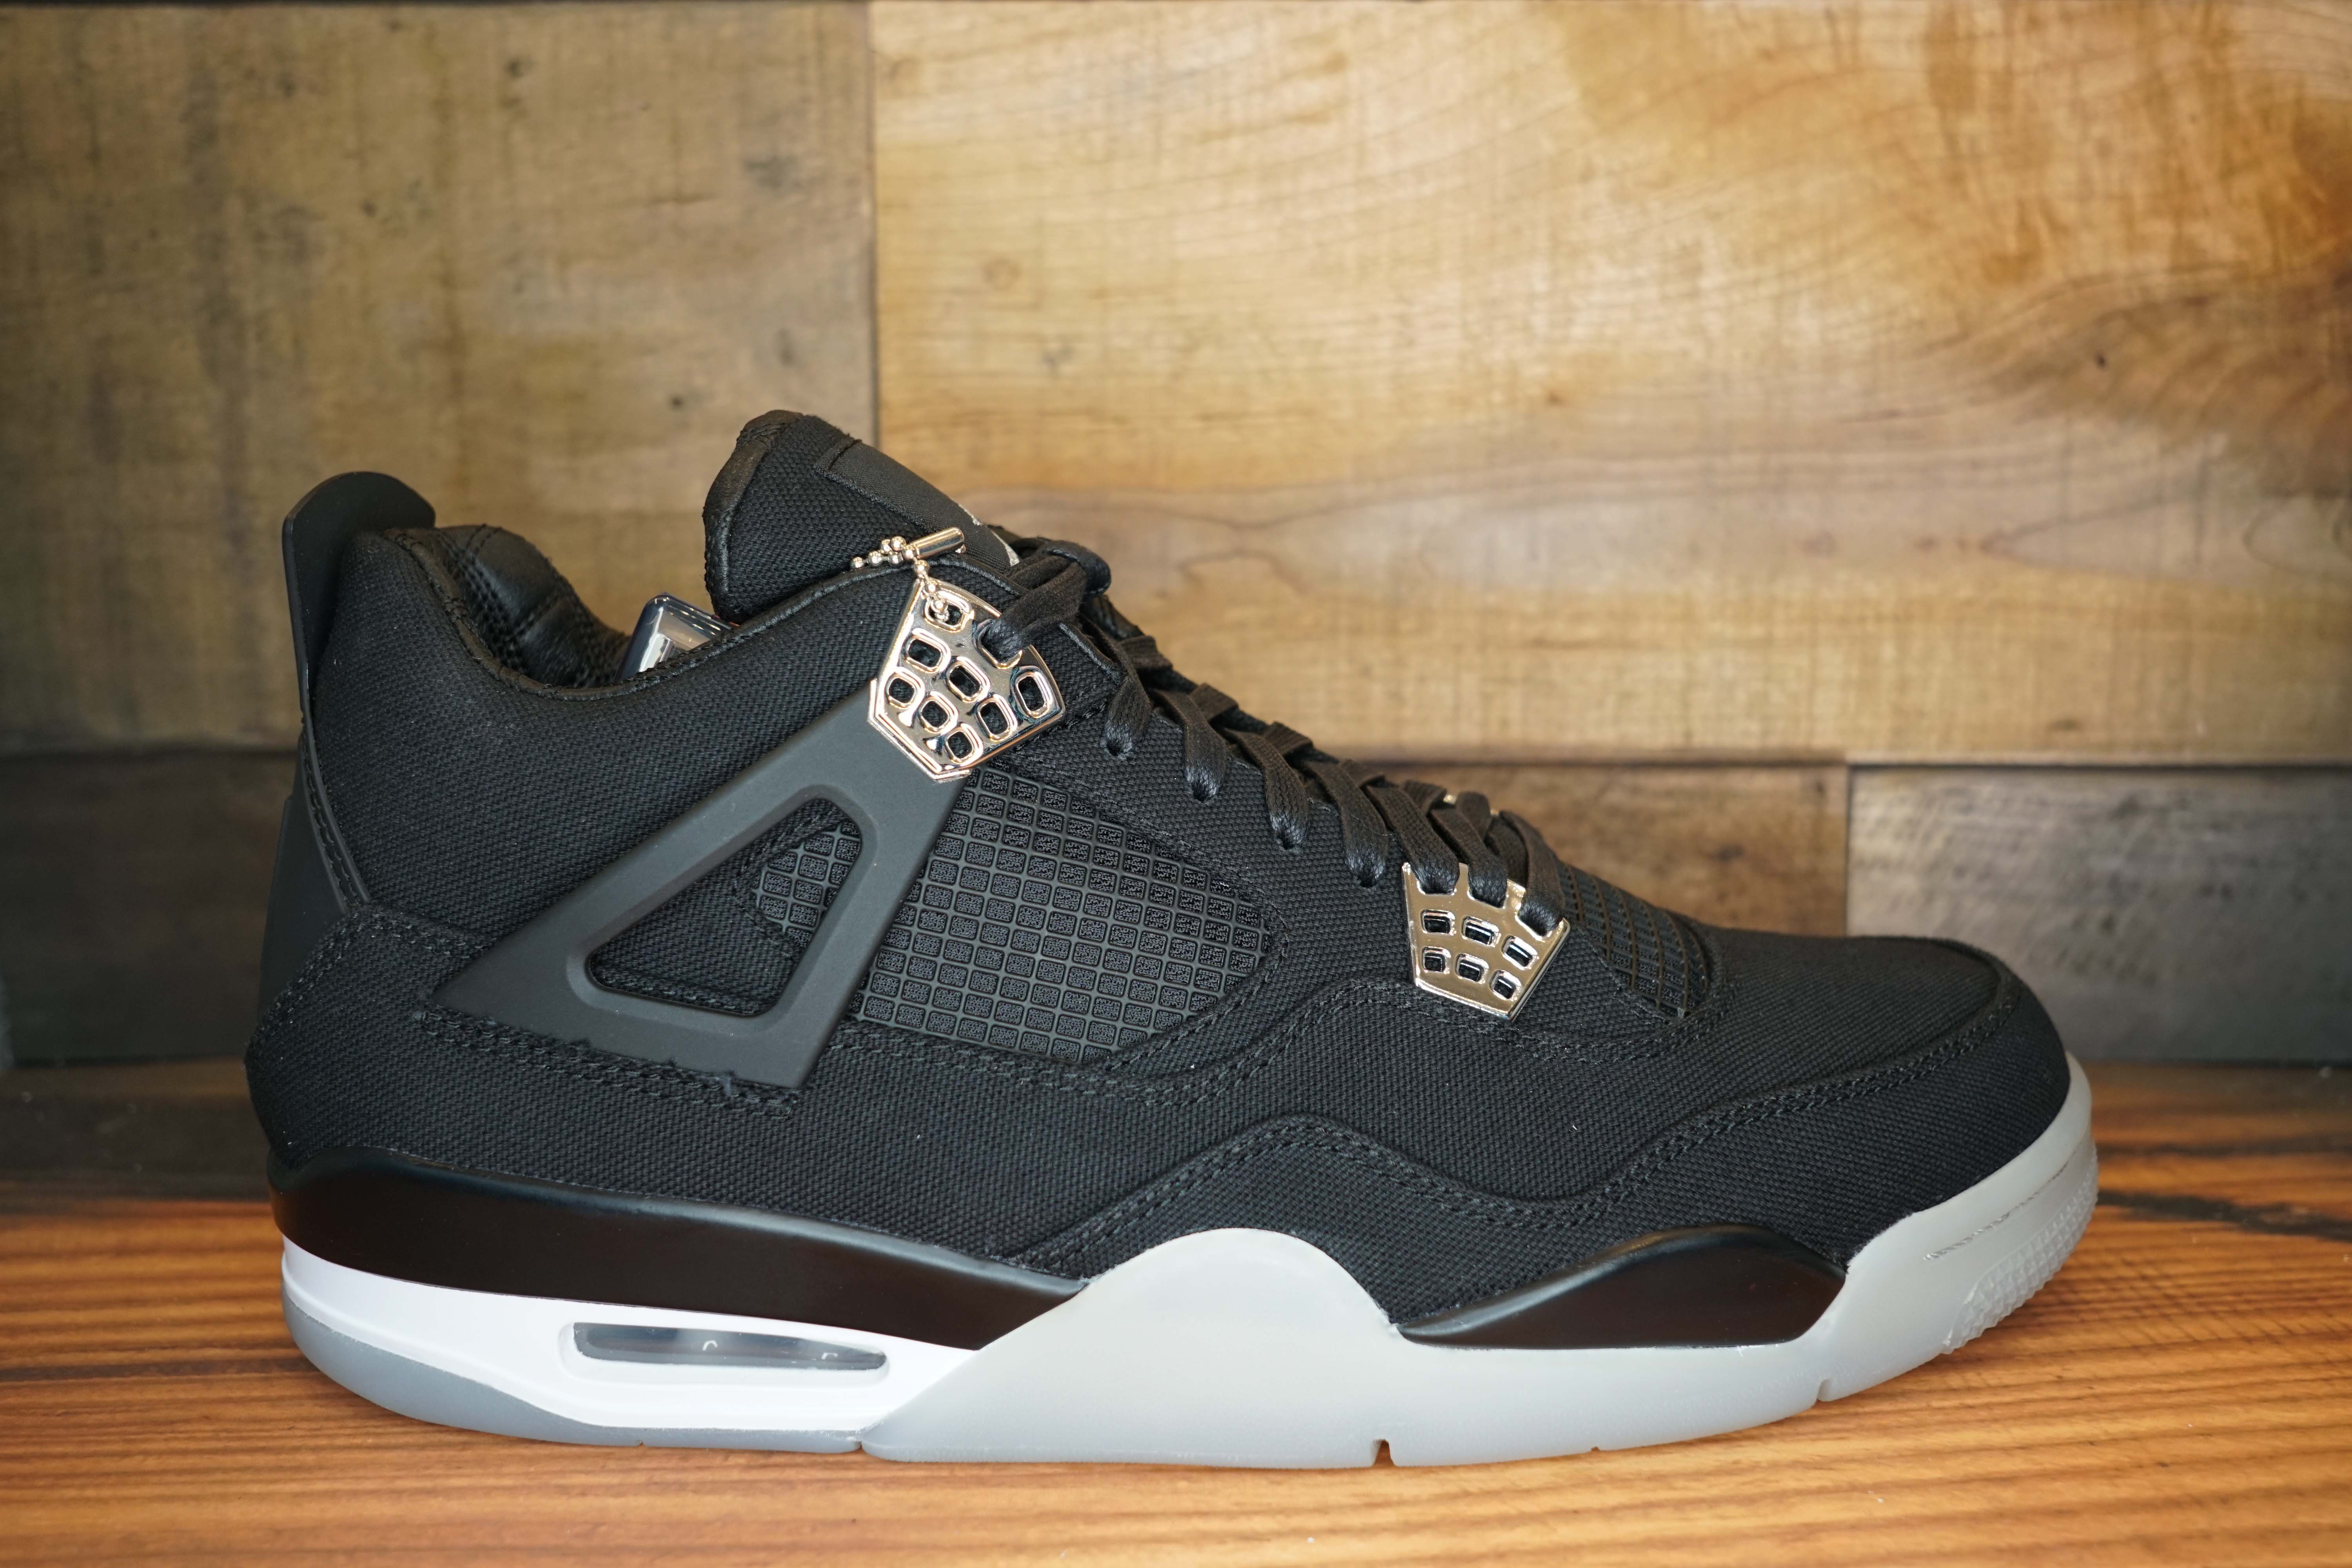 d7232a004c6472 ... coupon for air jordan 4 retro carhartt x eminem 2015 07128 1dc86